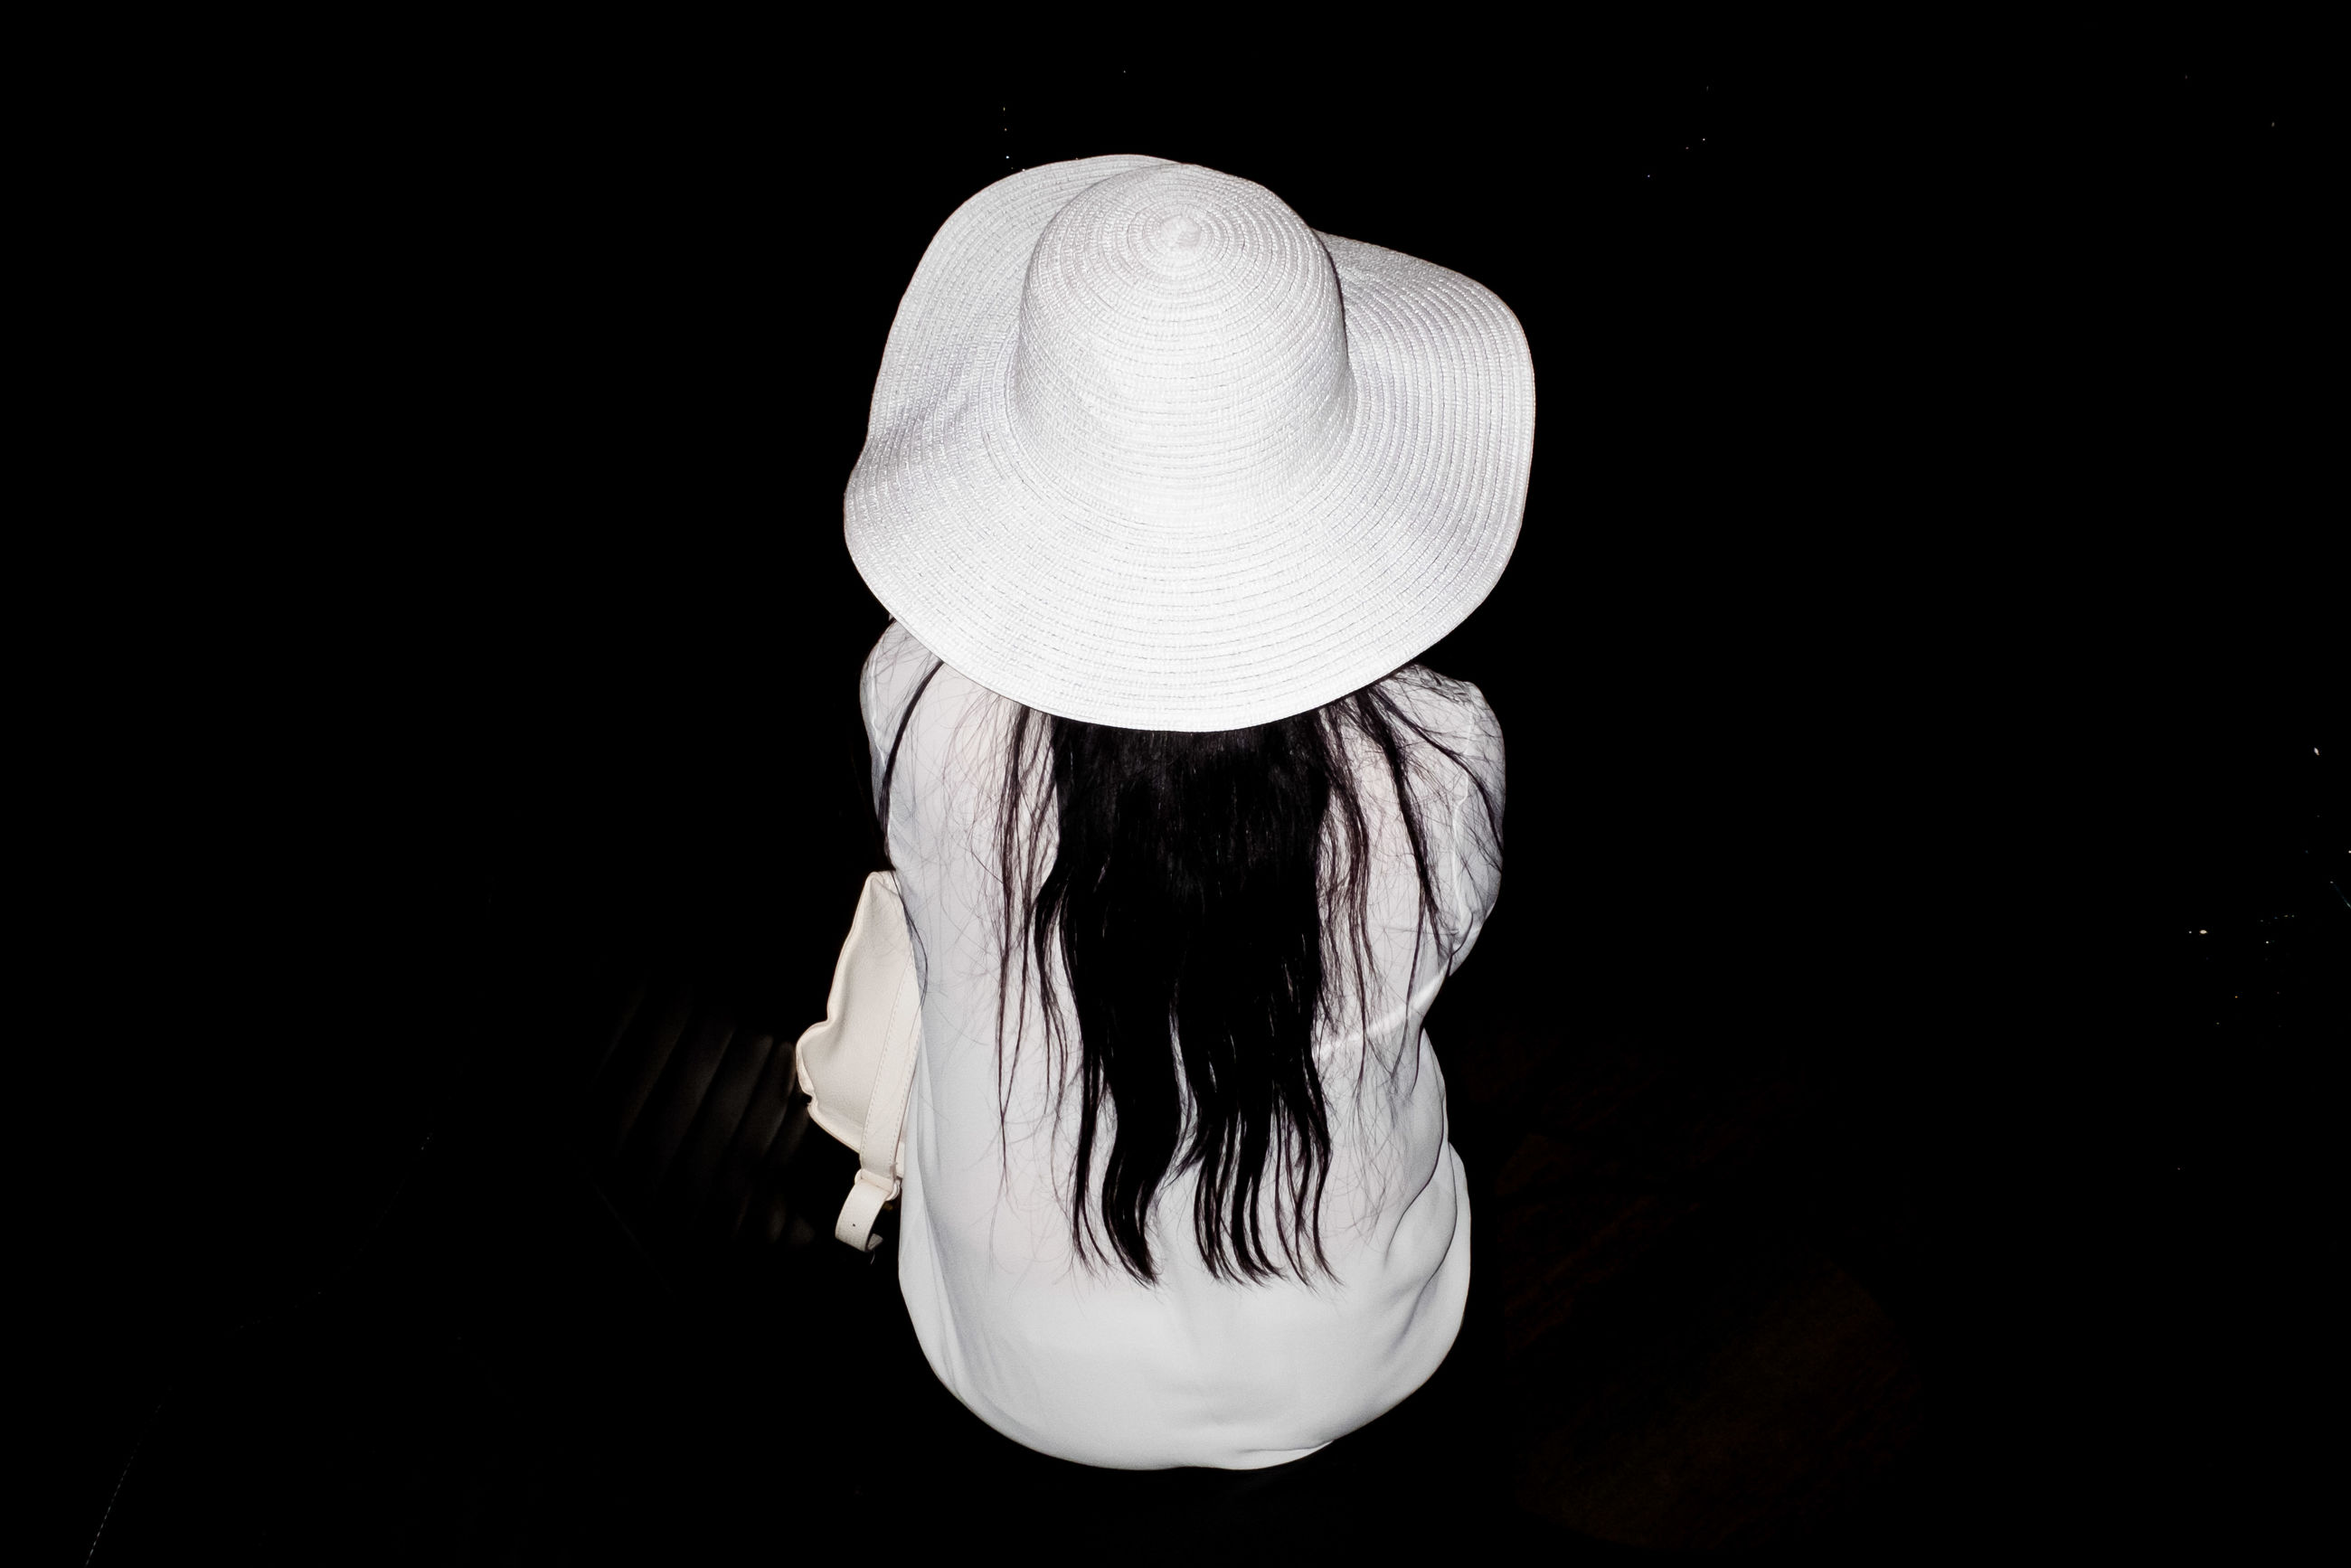 hat, real people, black background, sun hat, women, one person, indoors, lifestyles, night, close-up, people